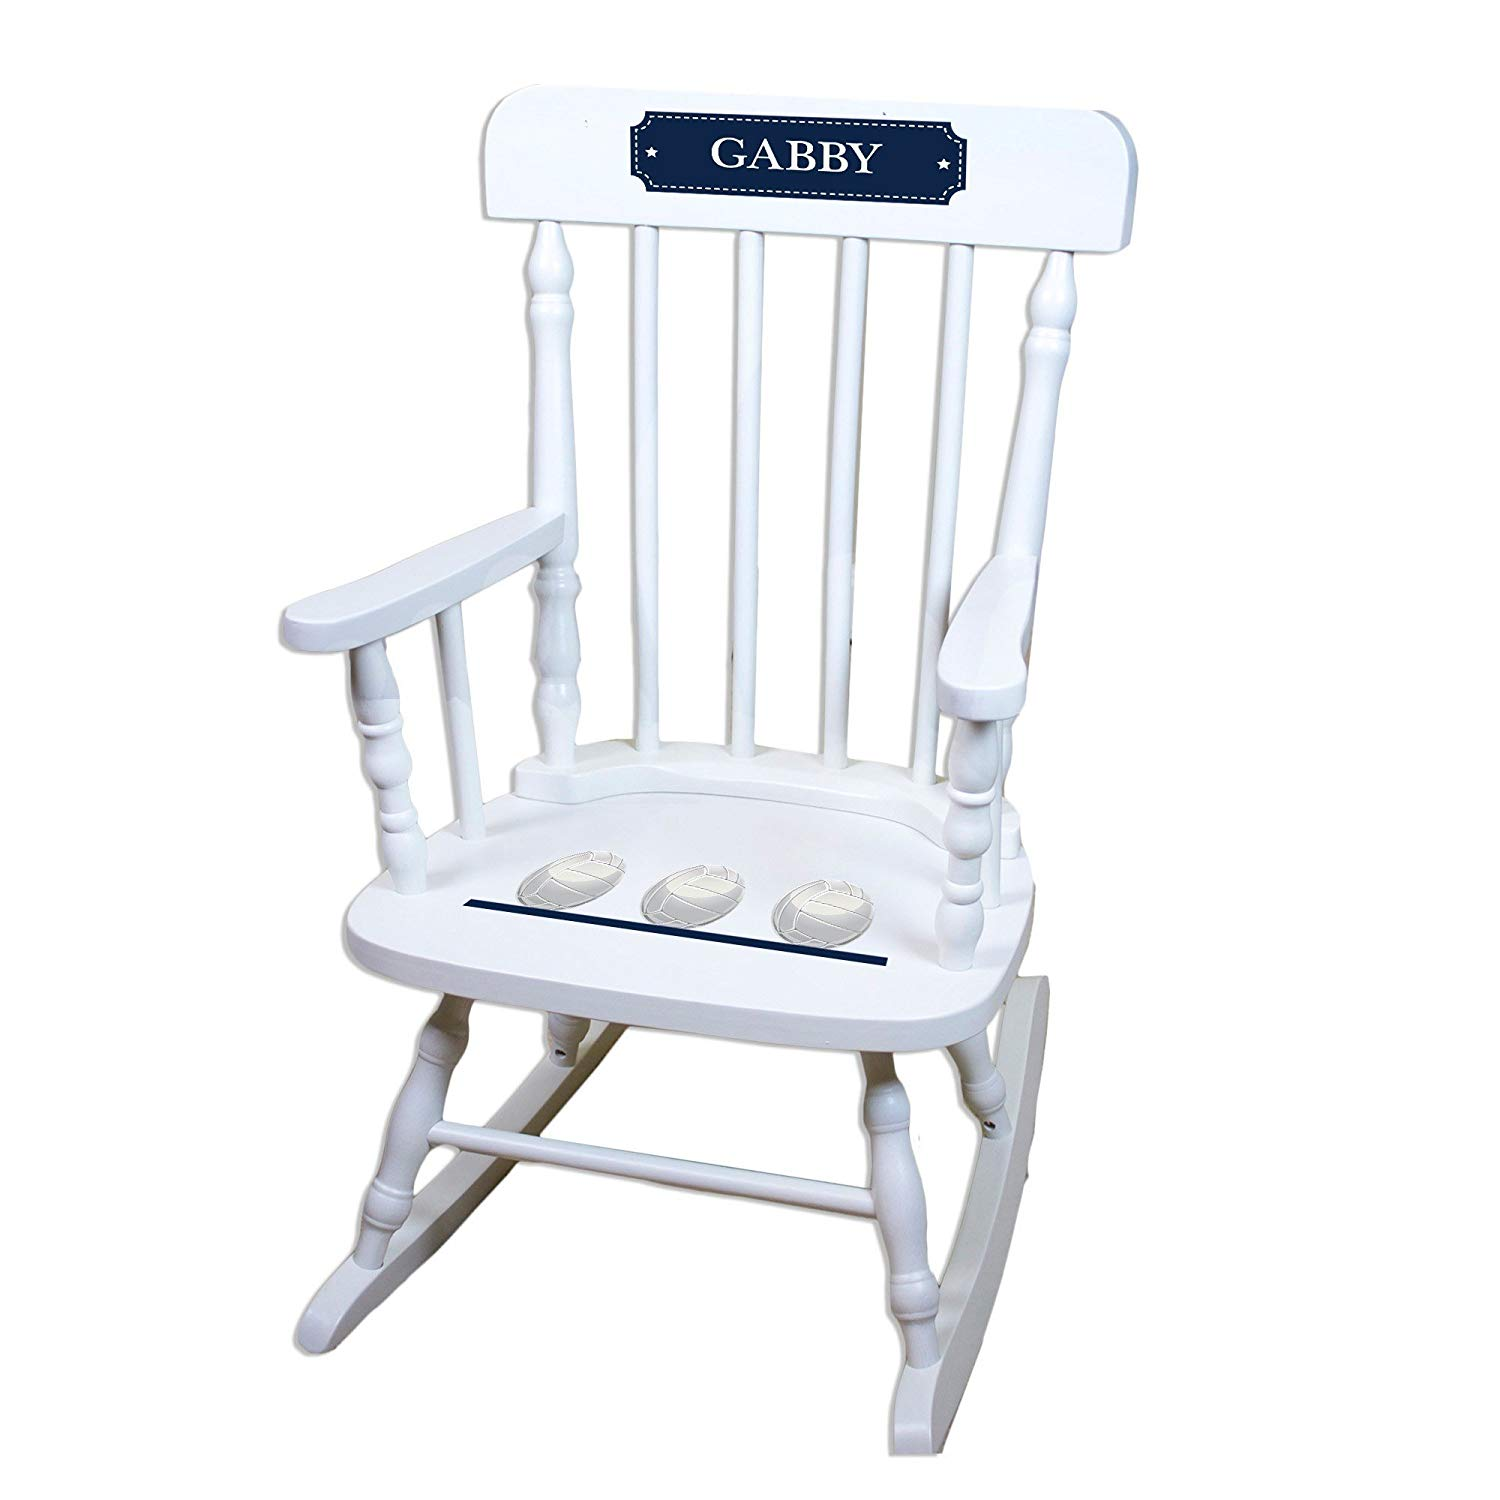 MyBambino Personalized Volleyballs White Wooden Childrens Rocking Chair